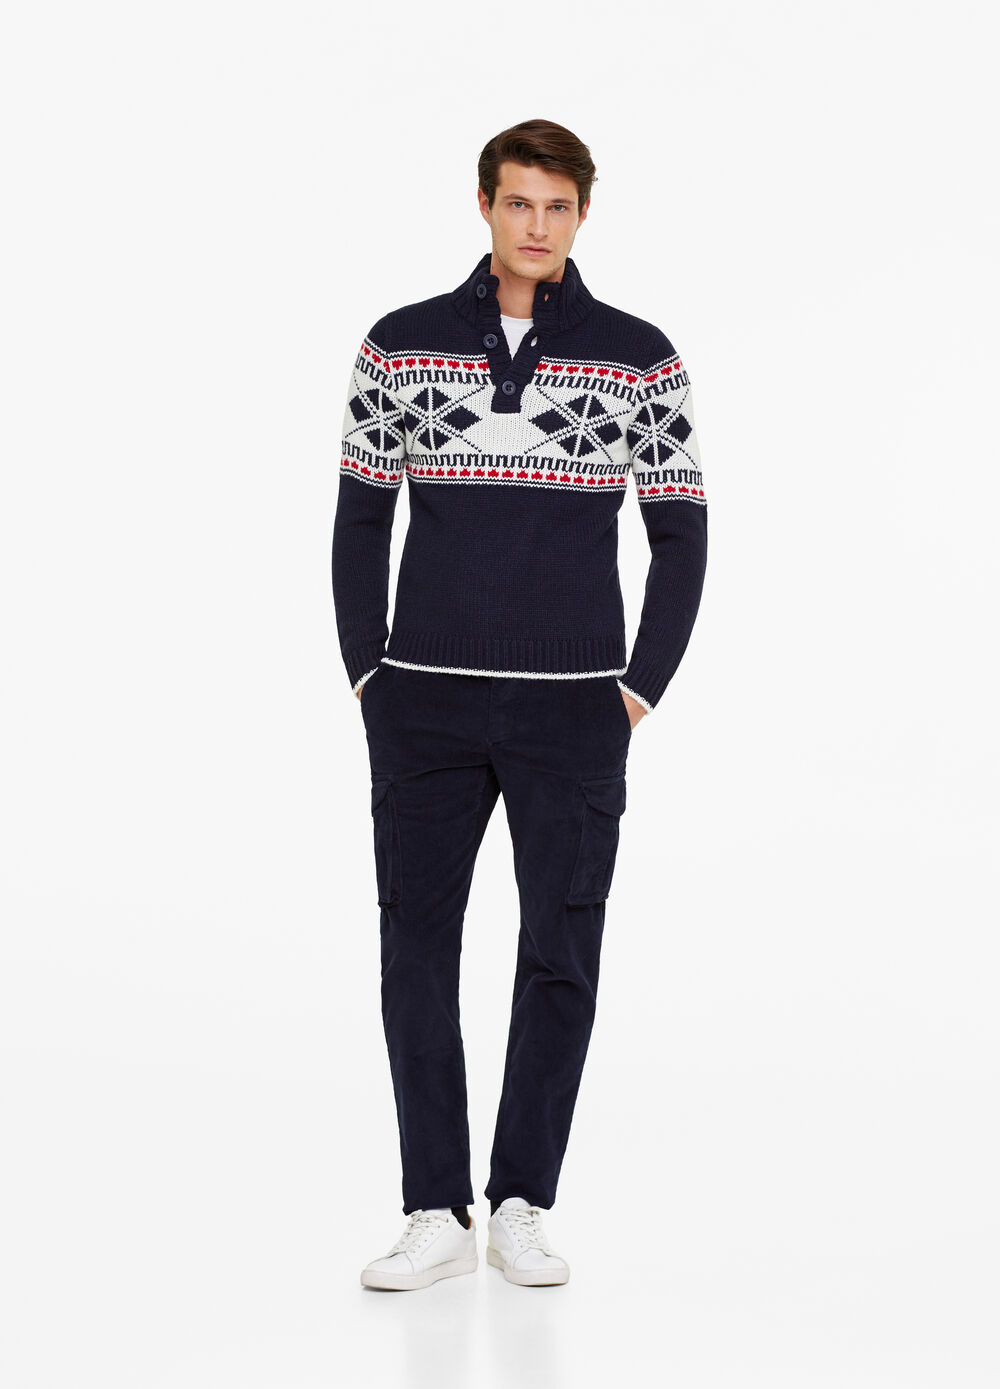 Christmas sweater with high neck and buttons